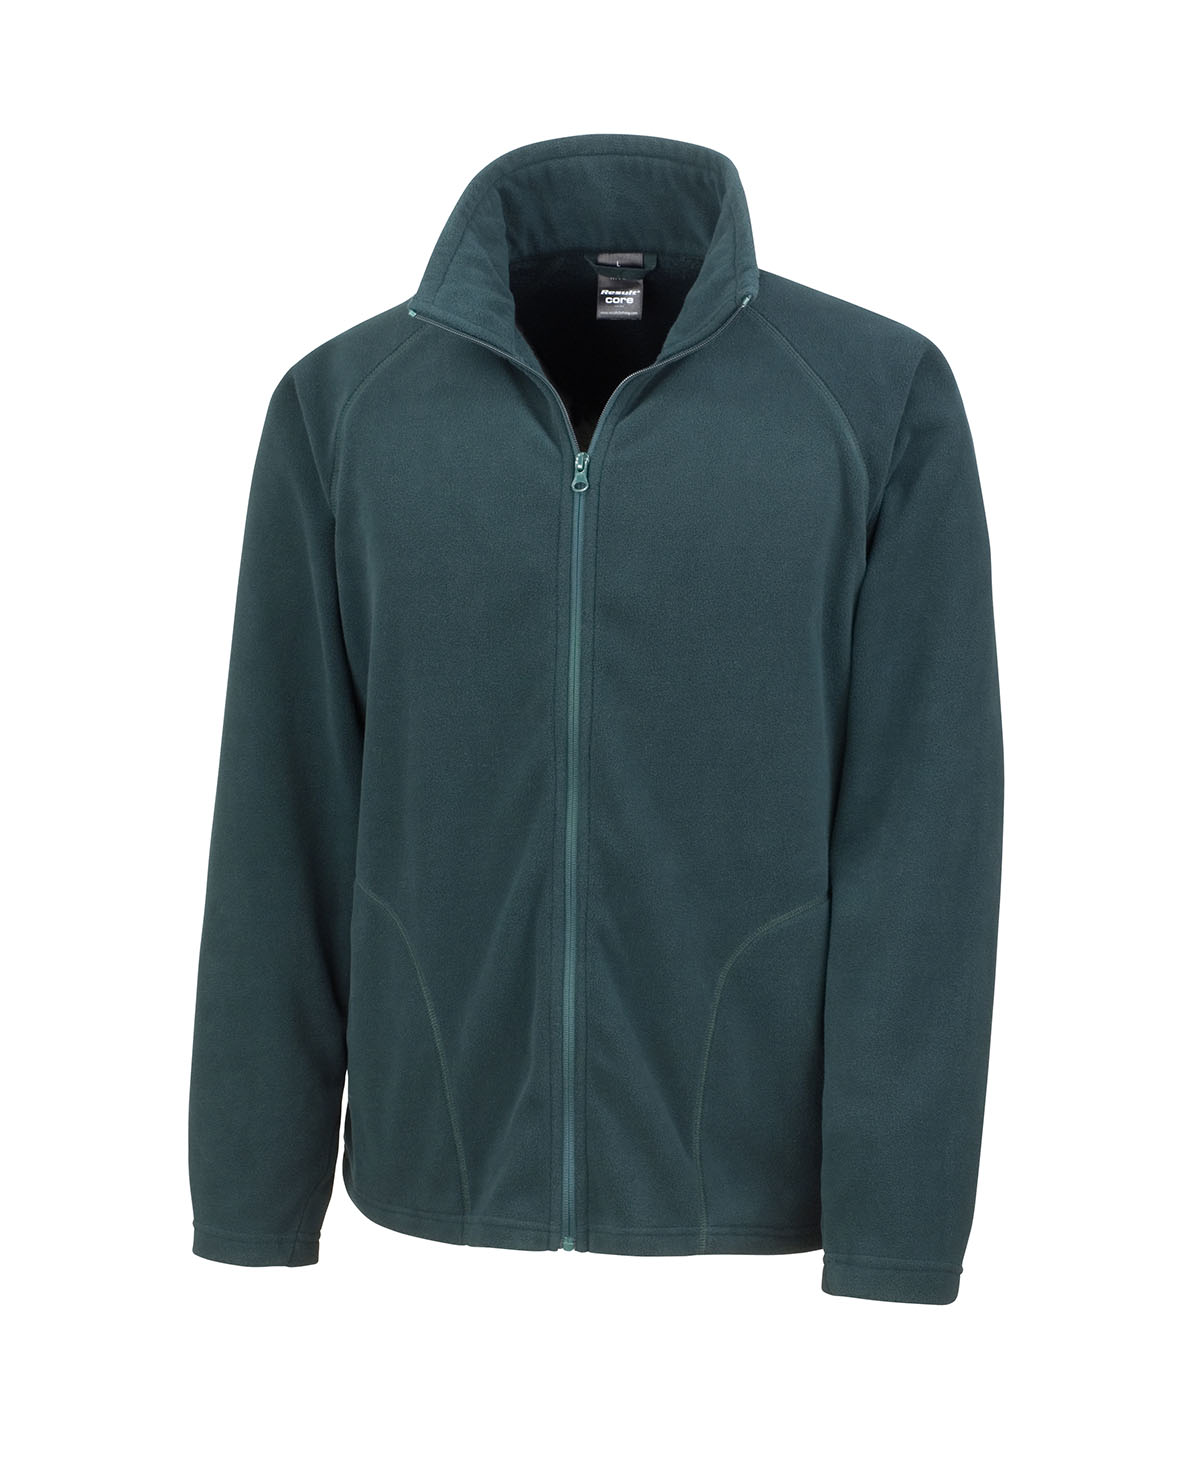 Fleeces that can be Branded with Your Company Logo. Smart, Functional and Hardwearing Fleeces for all businesses